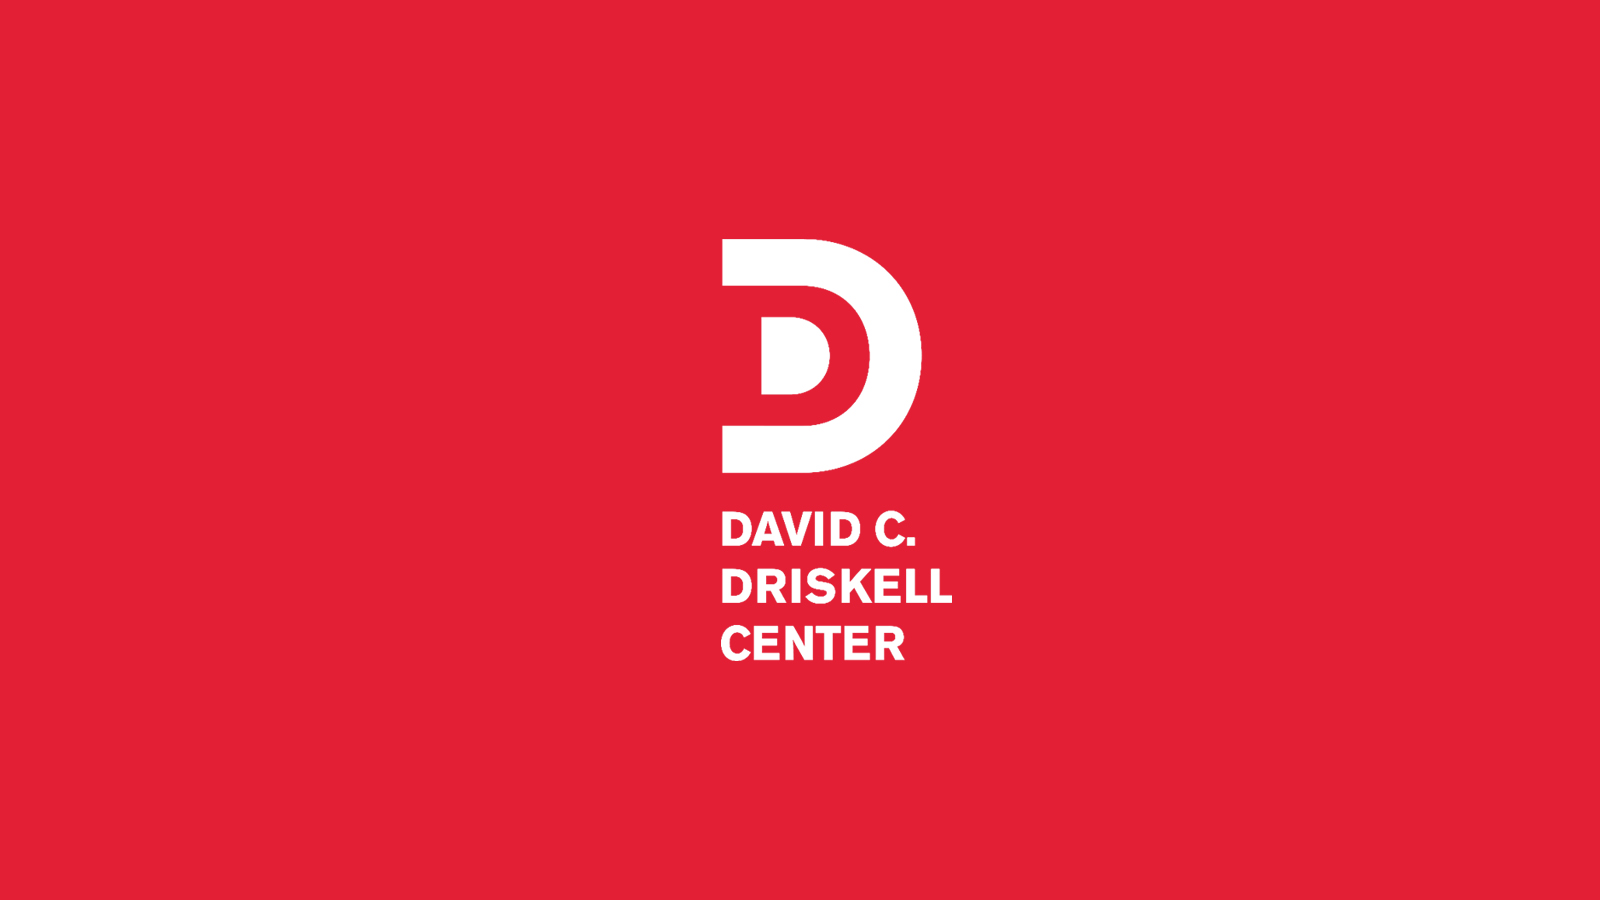 Driskell Center Default Inset Image